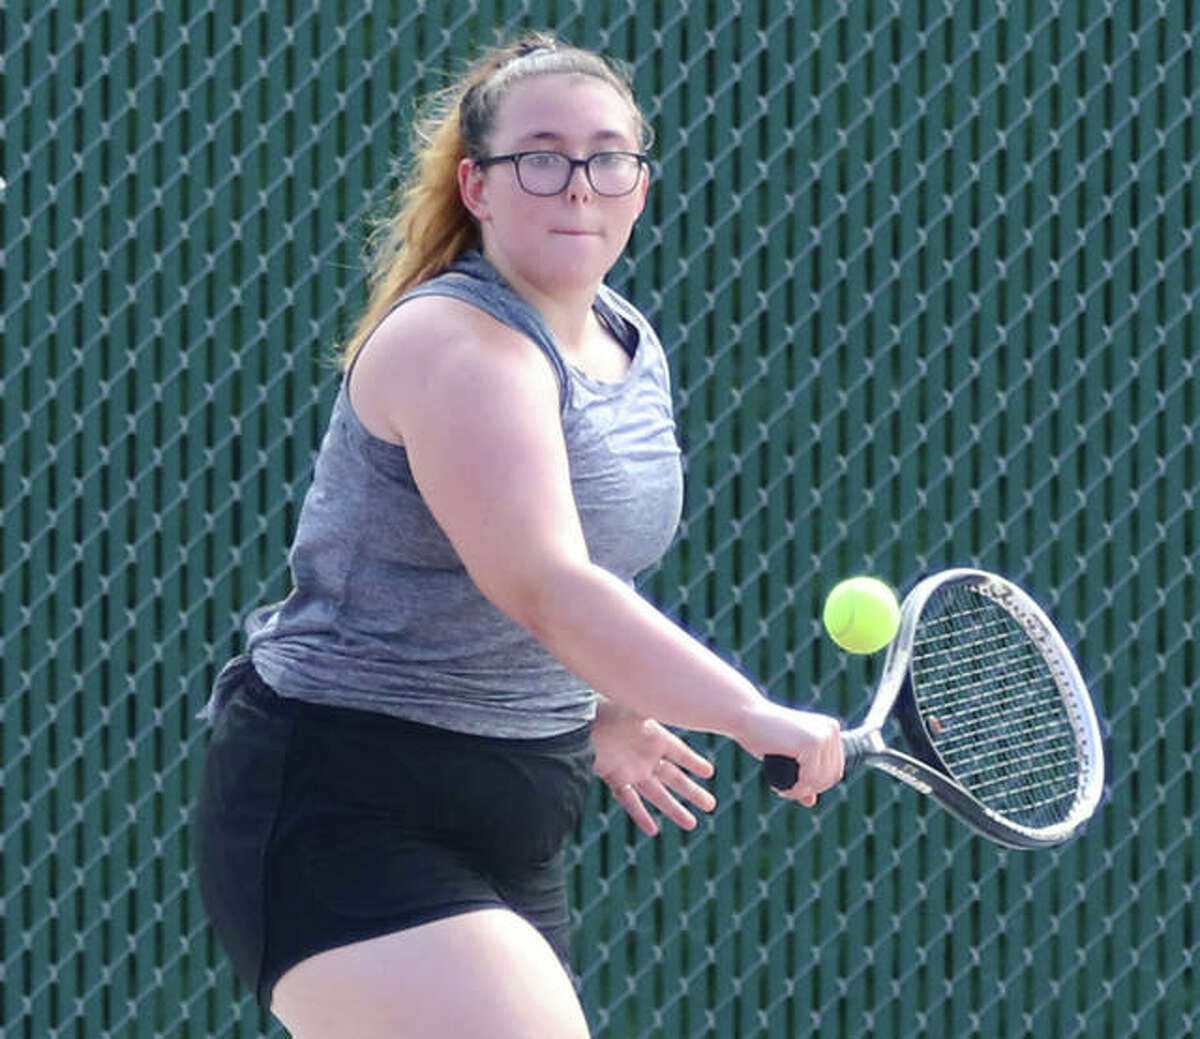 Alton senior Lydia Criveau hits a backhand during the Redbirds' first practice of the season Monday at the AHS courts in Godfrey.